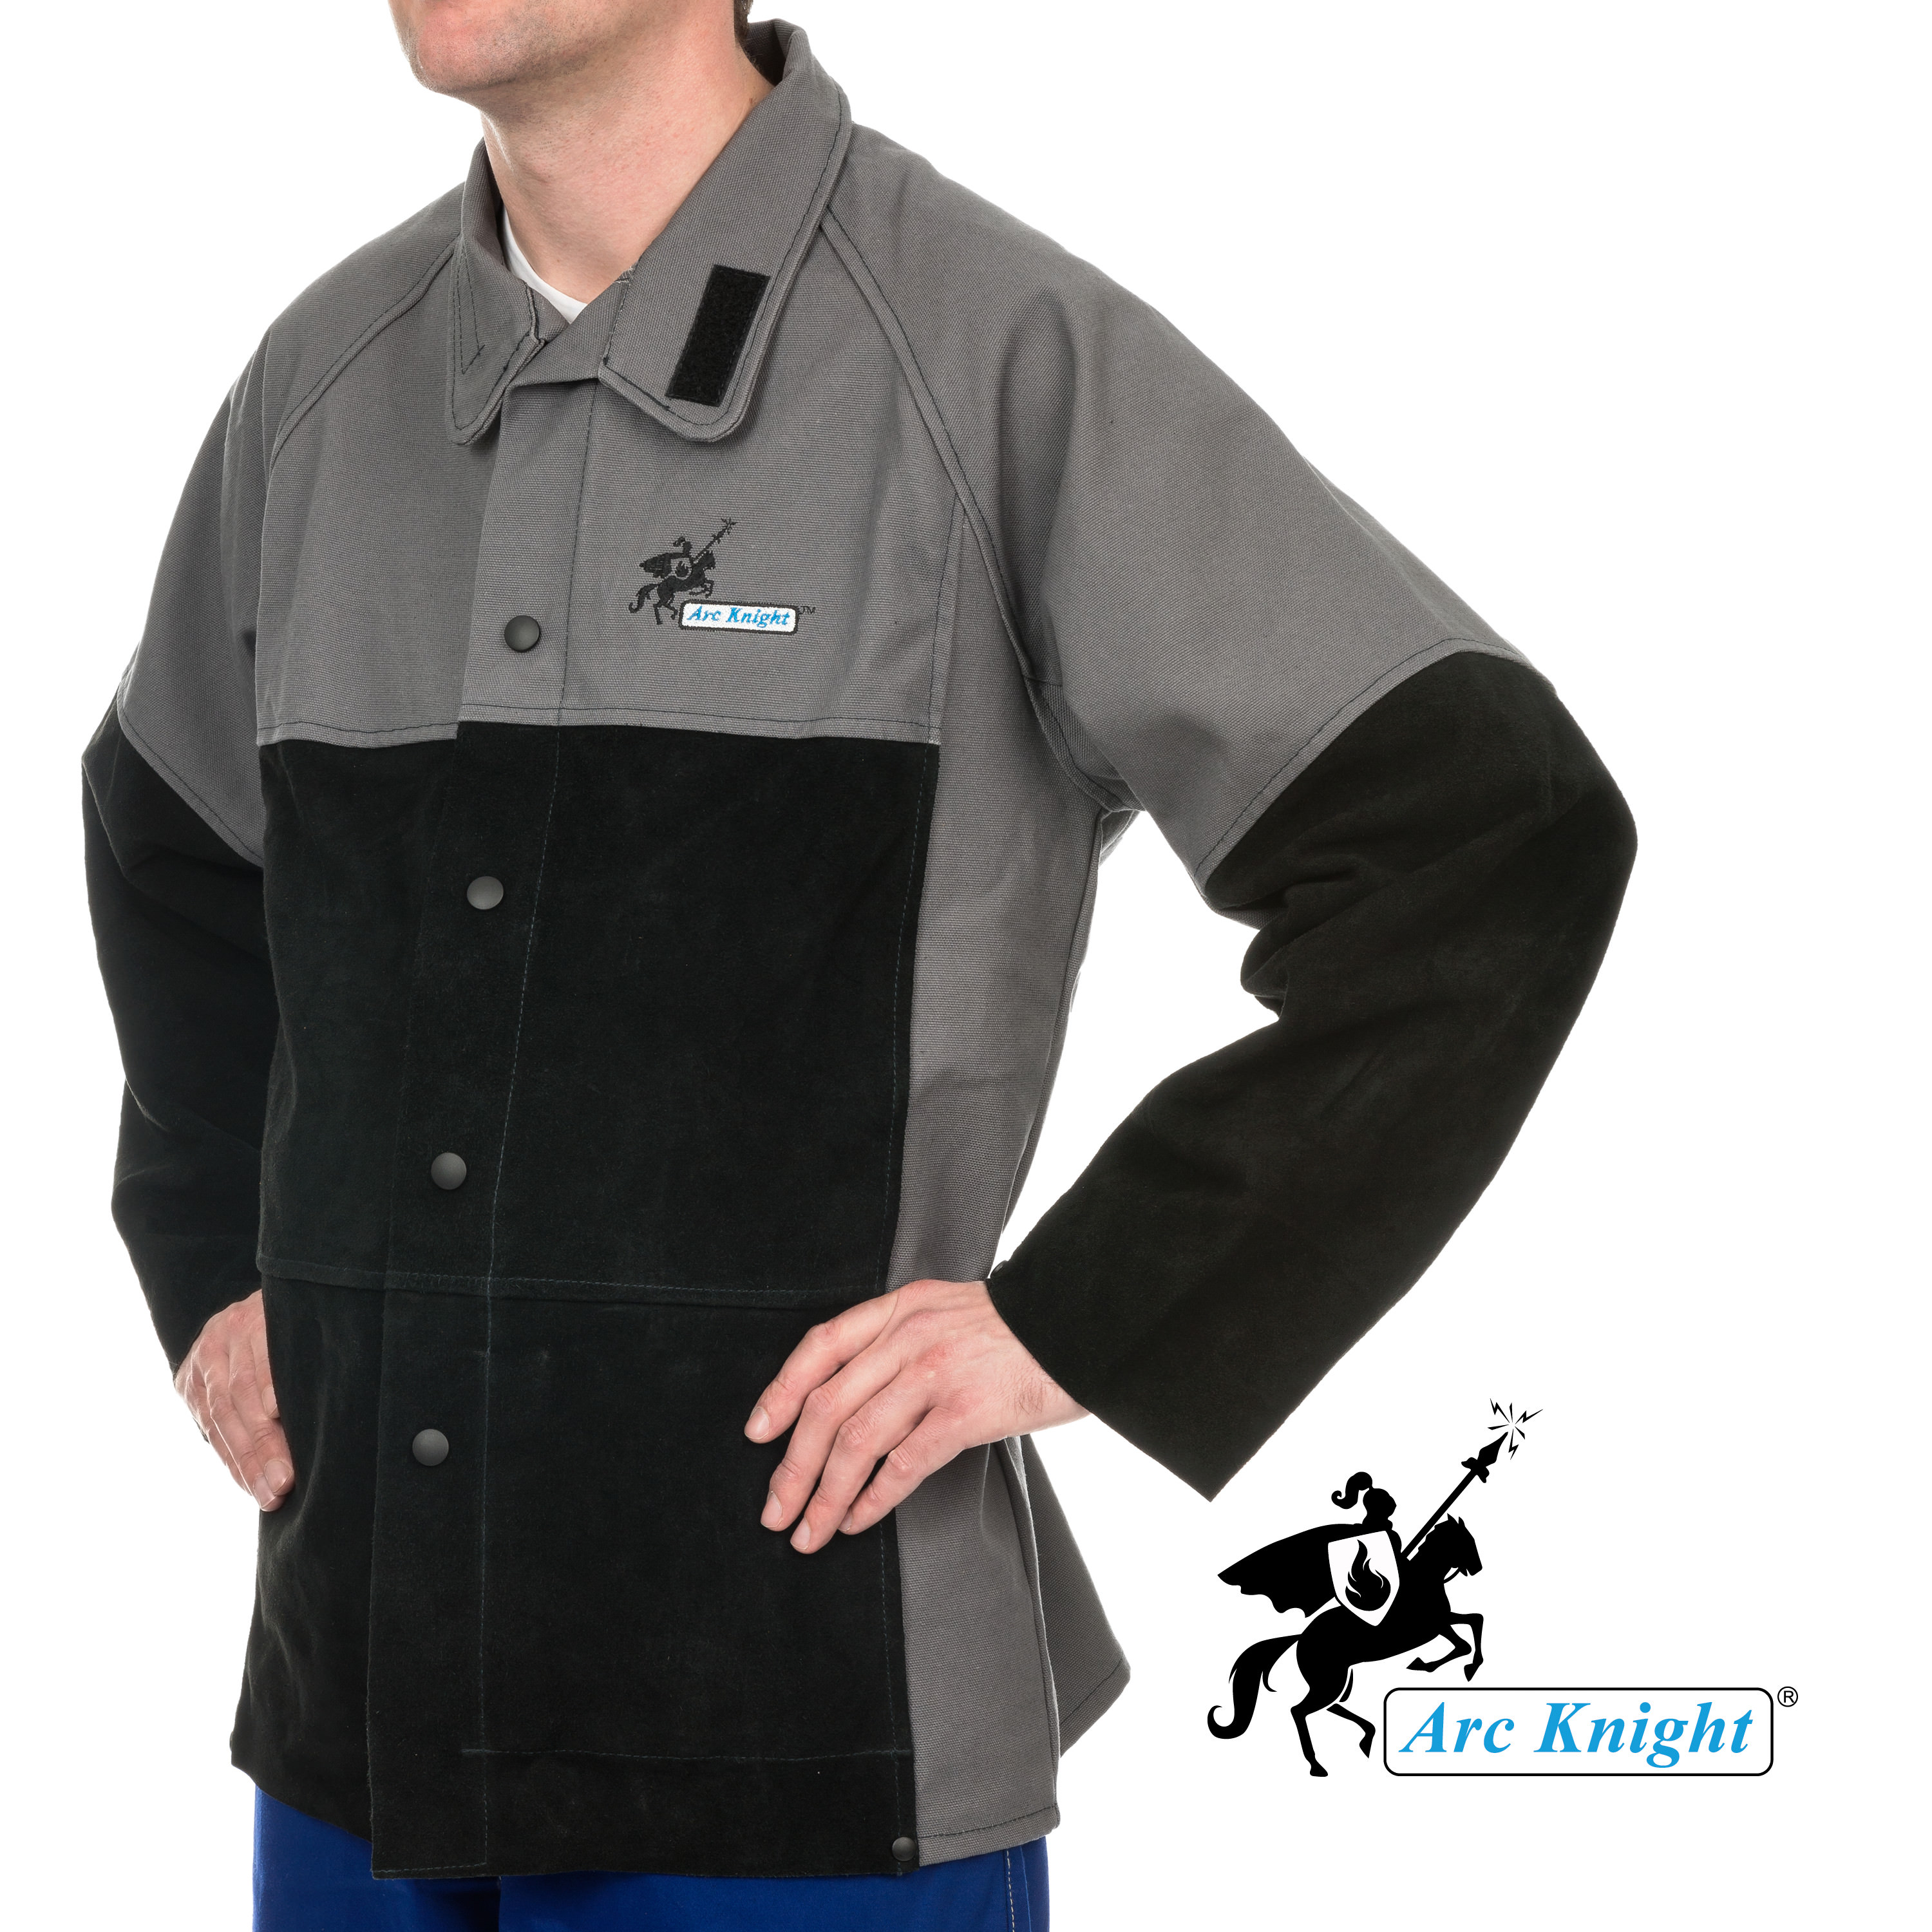 Weldas® Arc Knight® Versatile Heavy Duty Welding Jacket - Cotton and Leather Sleeves - Grey/Black - Size L